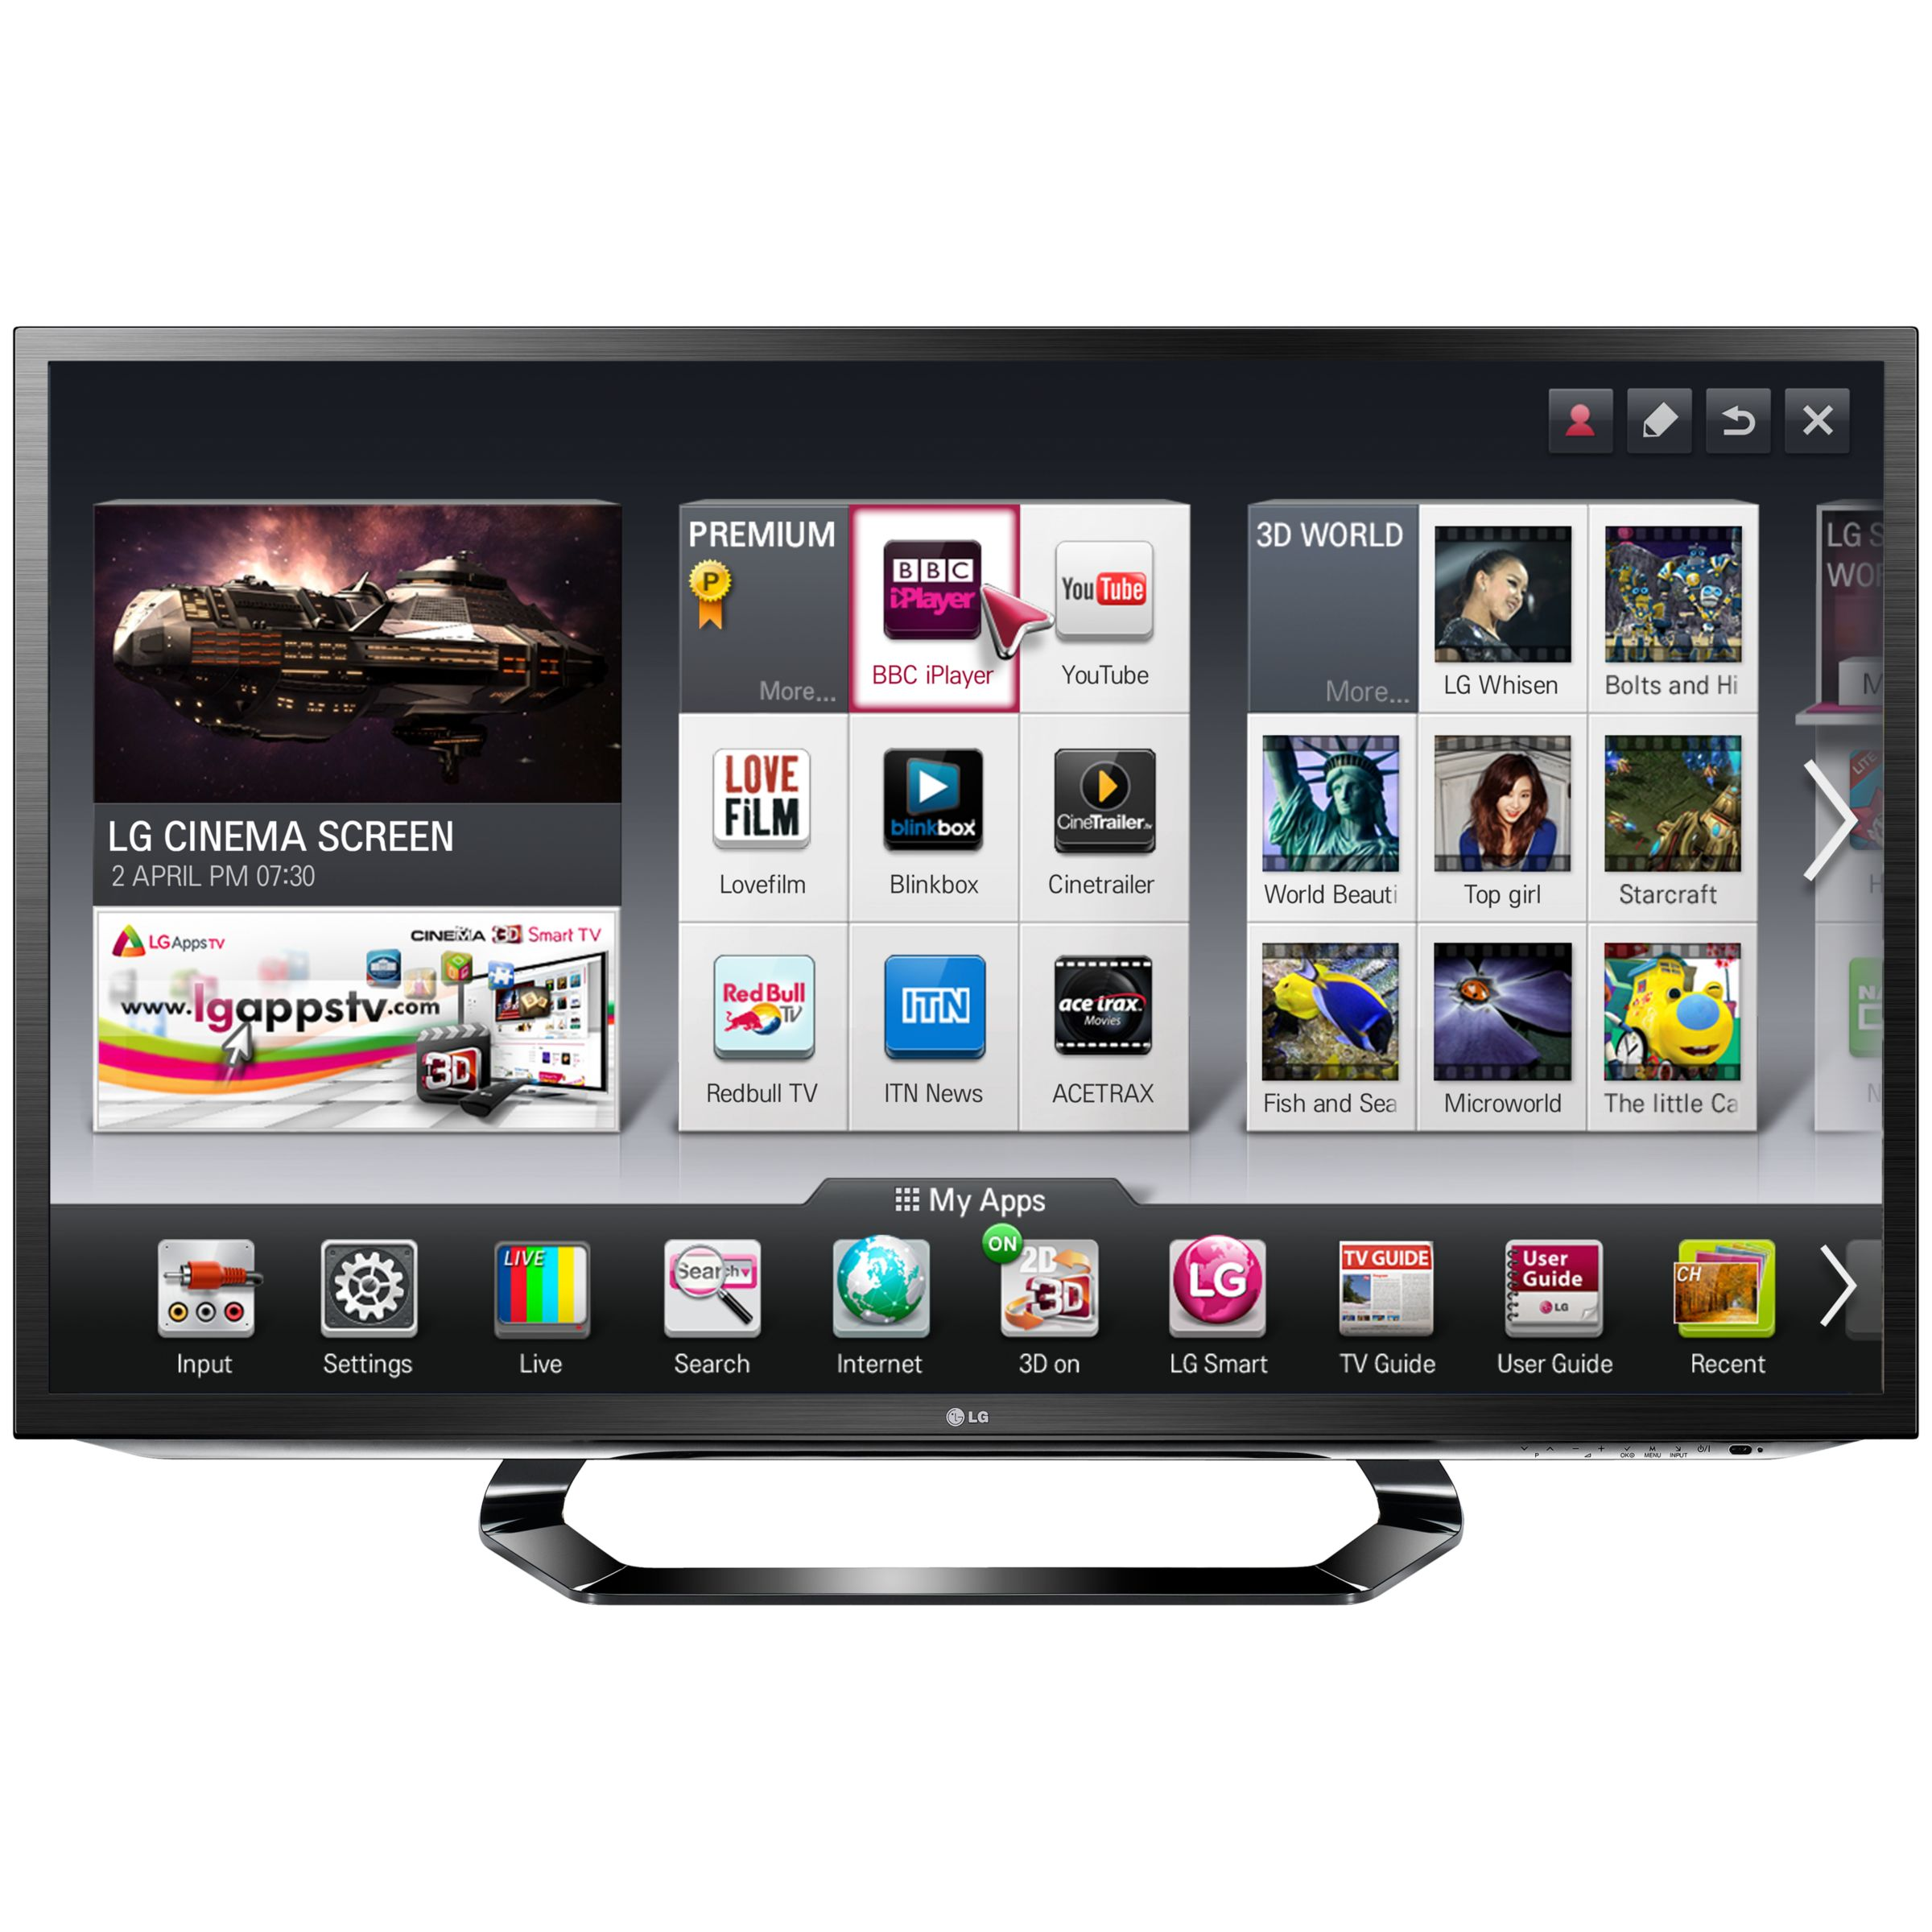 Televisions LG 37LM620T LED HD 1080p 3D Smart TV, 37 Inch with Freeview HD and 4x 3D Glasses